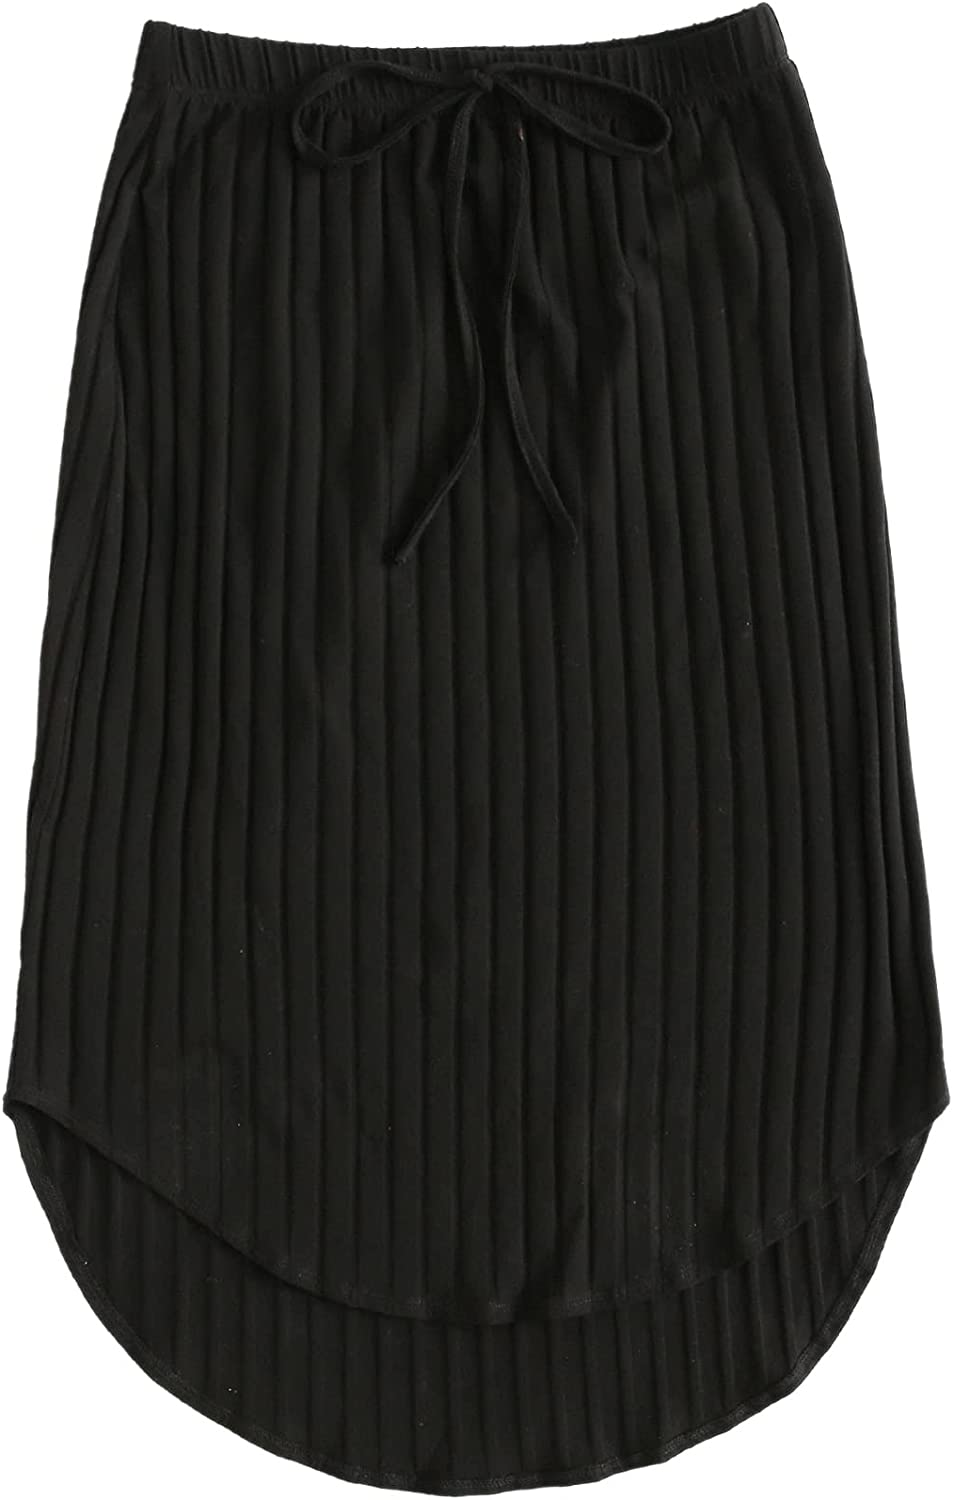 Floerns Women's Plus Size Casual Knot Waisted Curved Hem Knee Length Skirt